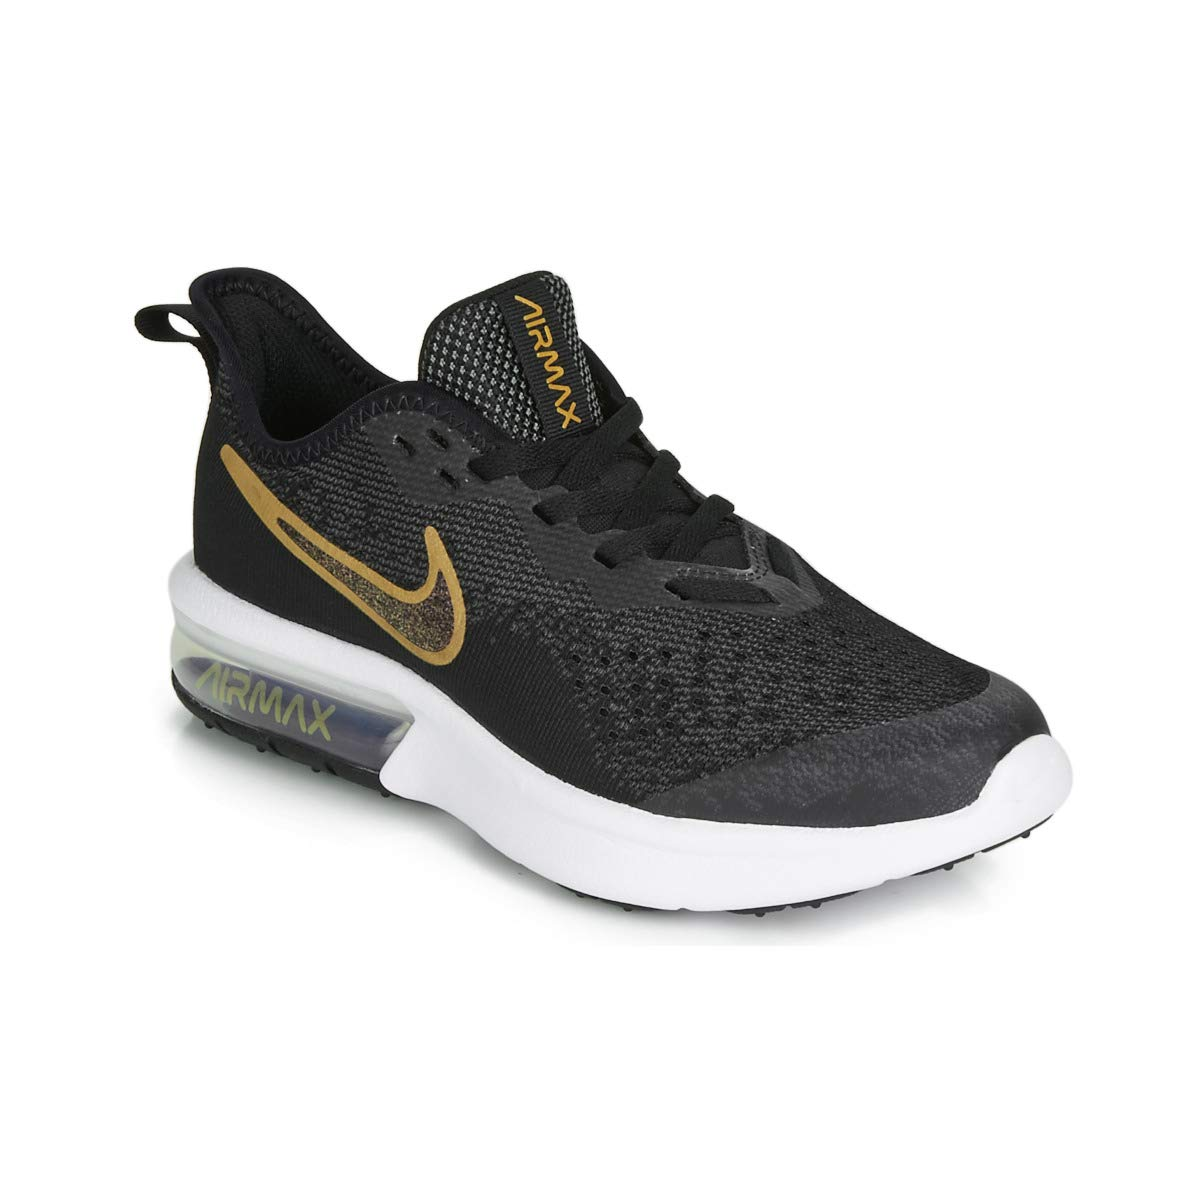 best loved 0ad8d 6bde3 Amazon.com   Nike Air Max Sequent 4 Shield Running Shoe   Running